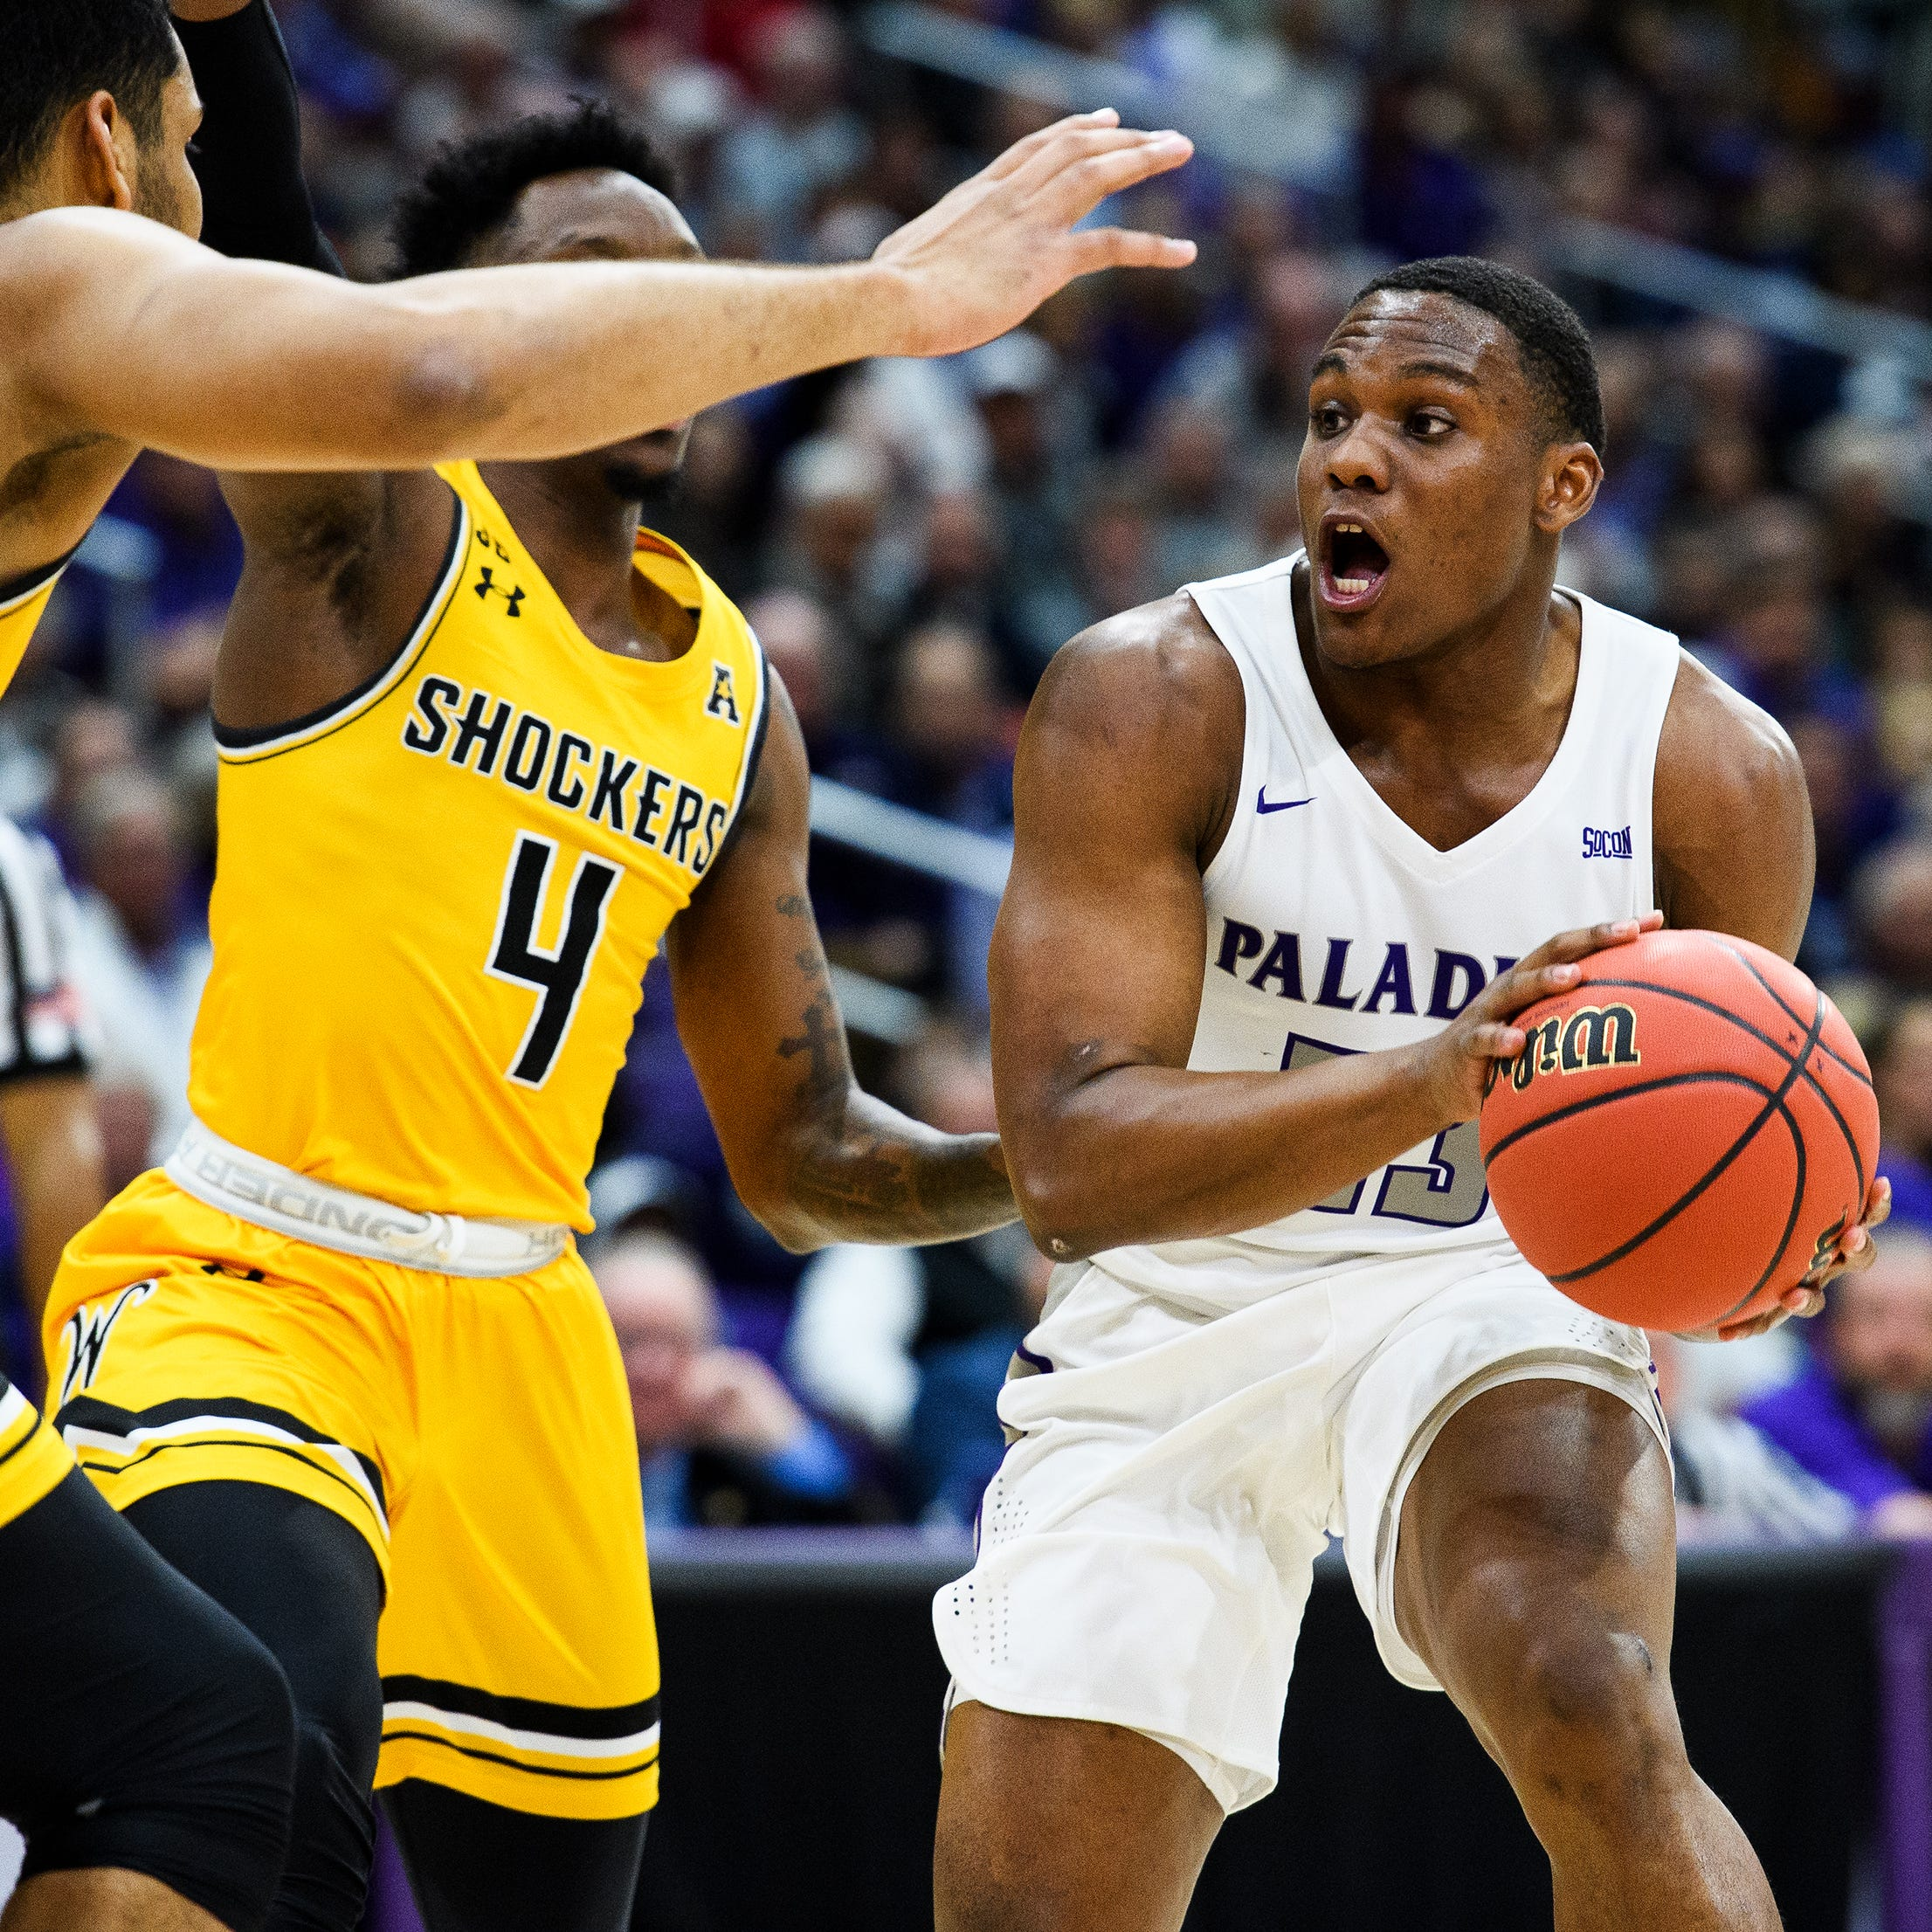 Furman's dream season ends in thrilling NIT bout with Wichita State